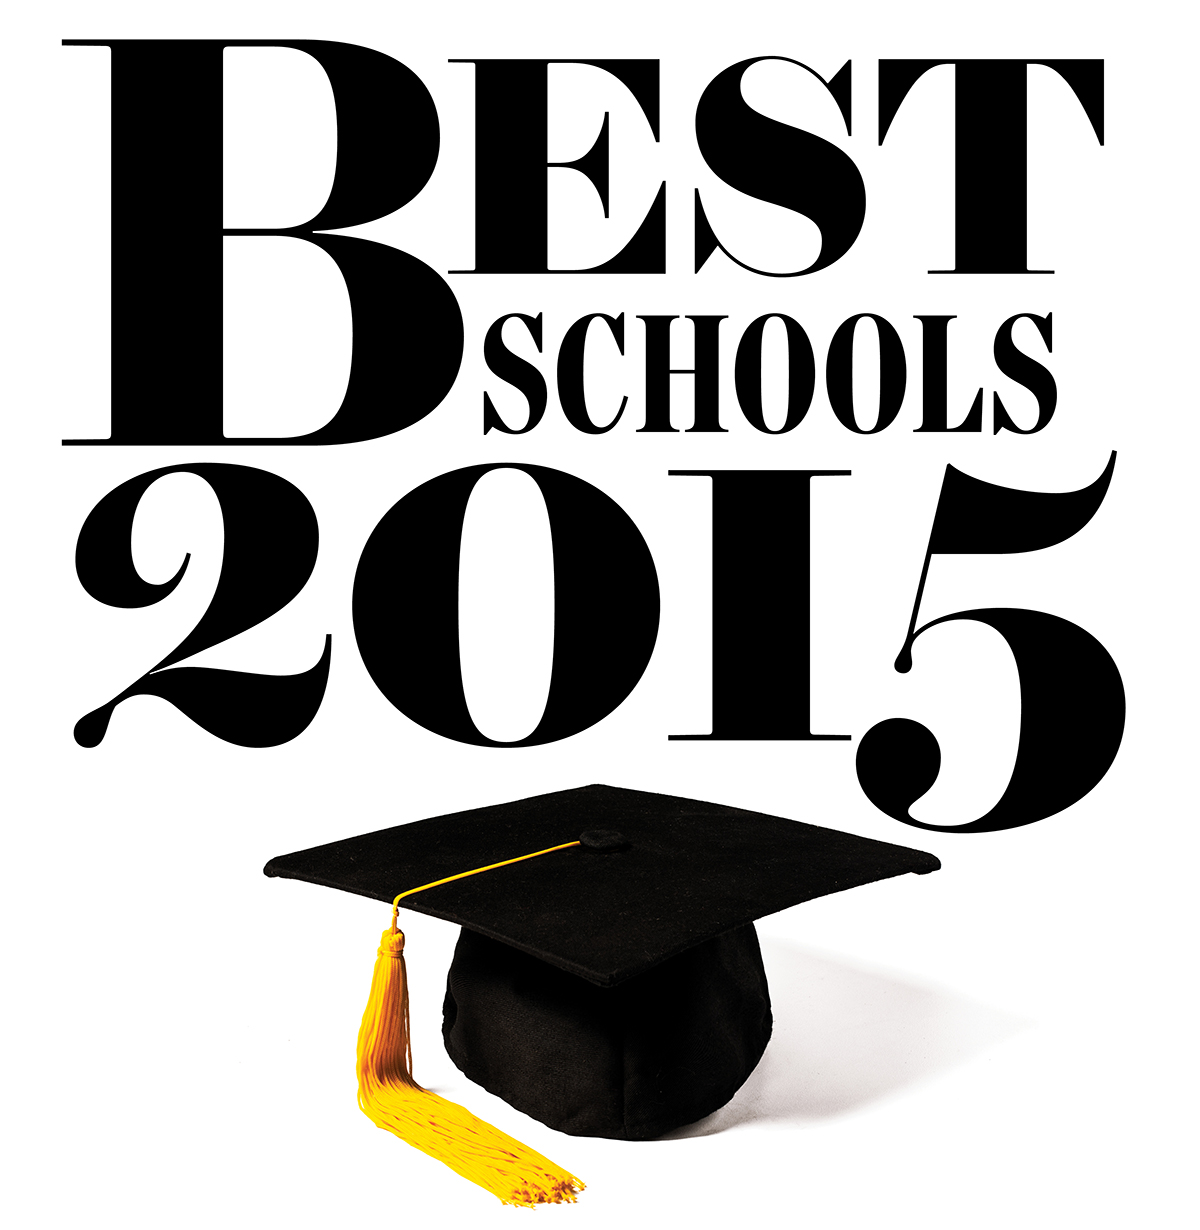 best schools boston